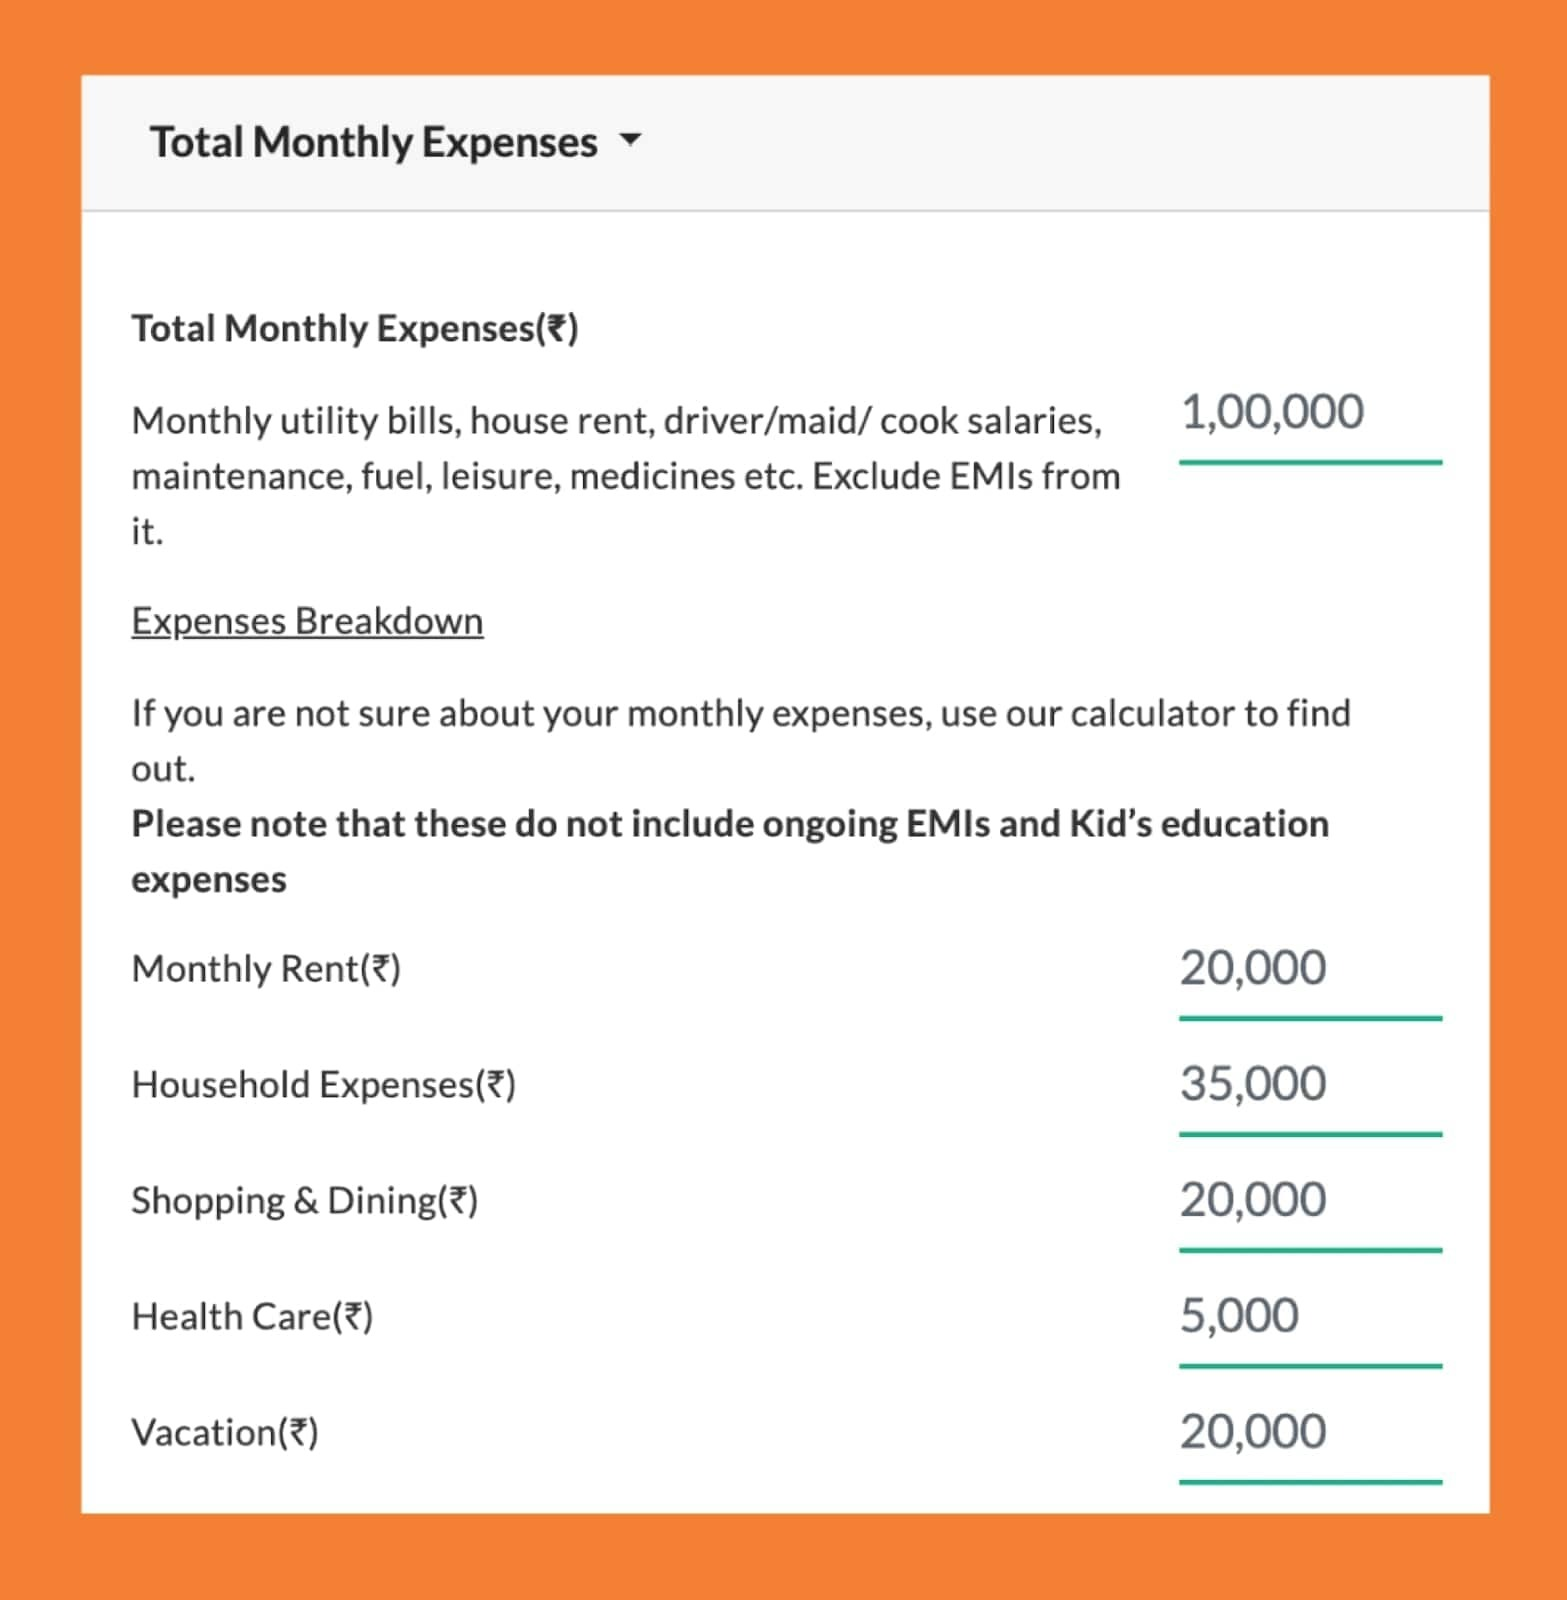 total monthly expenses